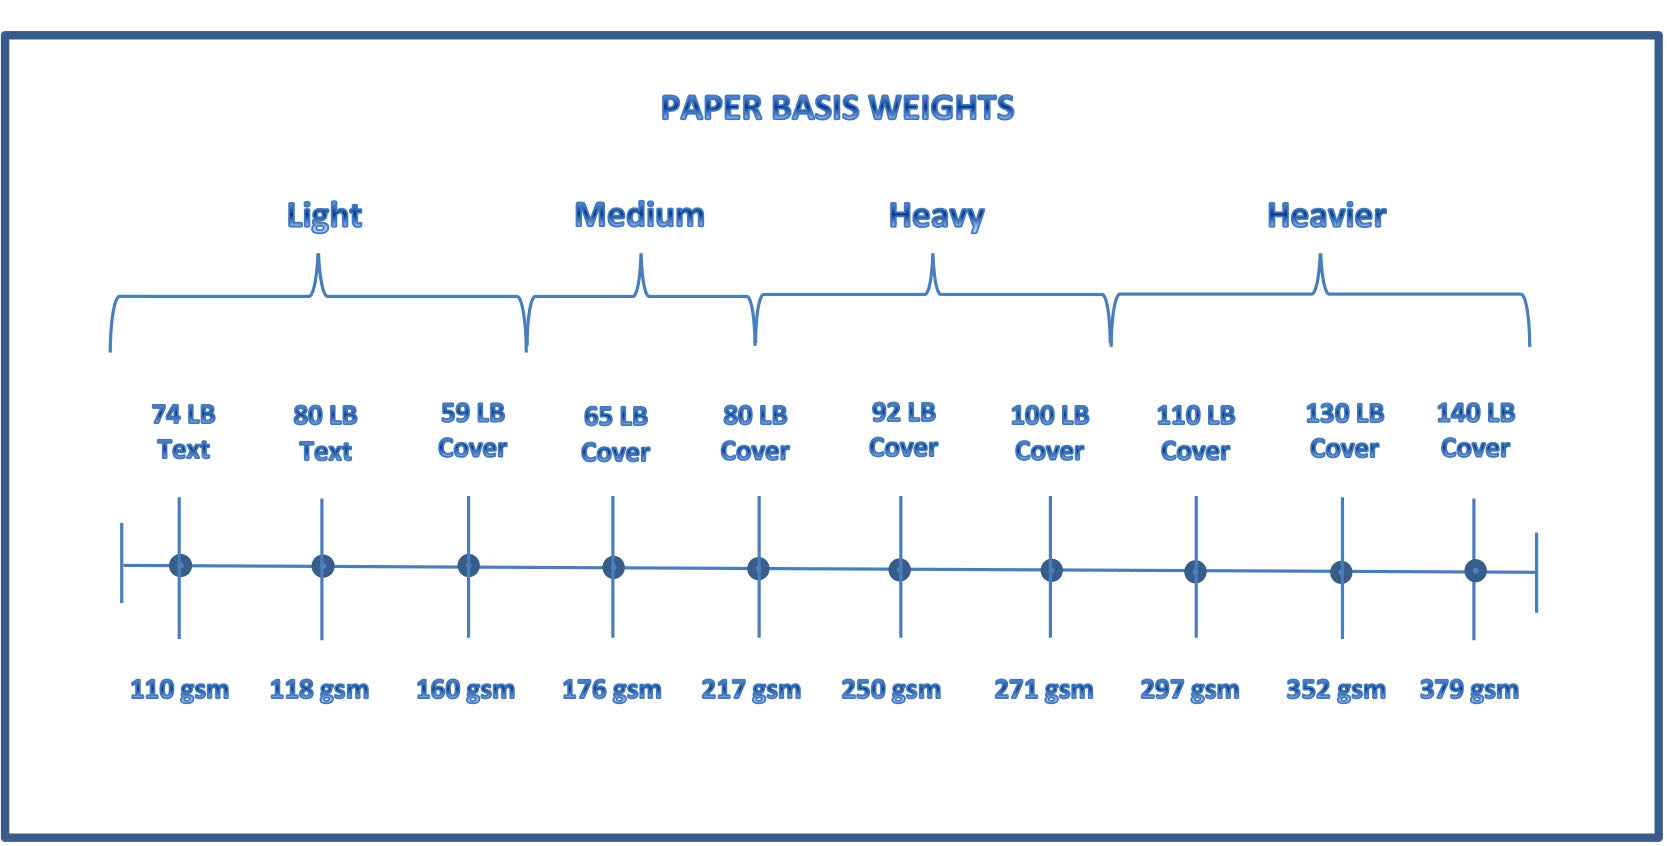 Paper 101 paper weight guide about paper weights and paper however paper weights can be confusing here is a chart that reveals the mystery behind the math nvjuhfo Choice Image